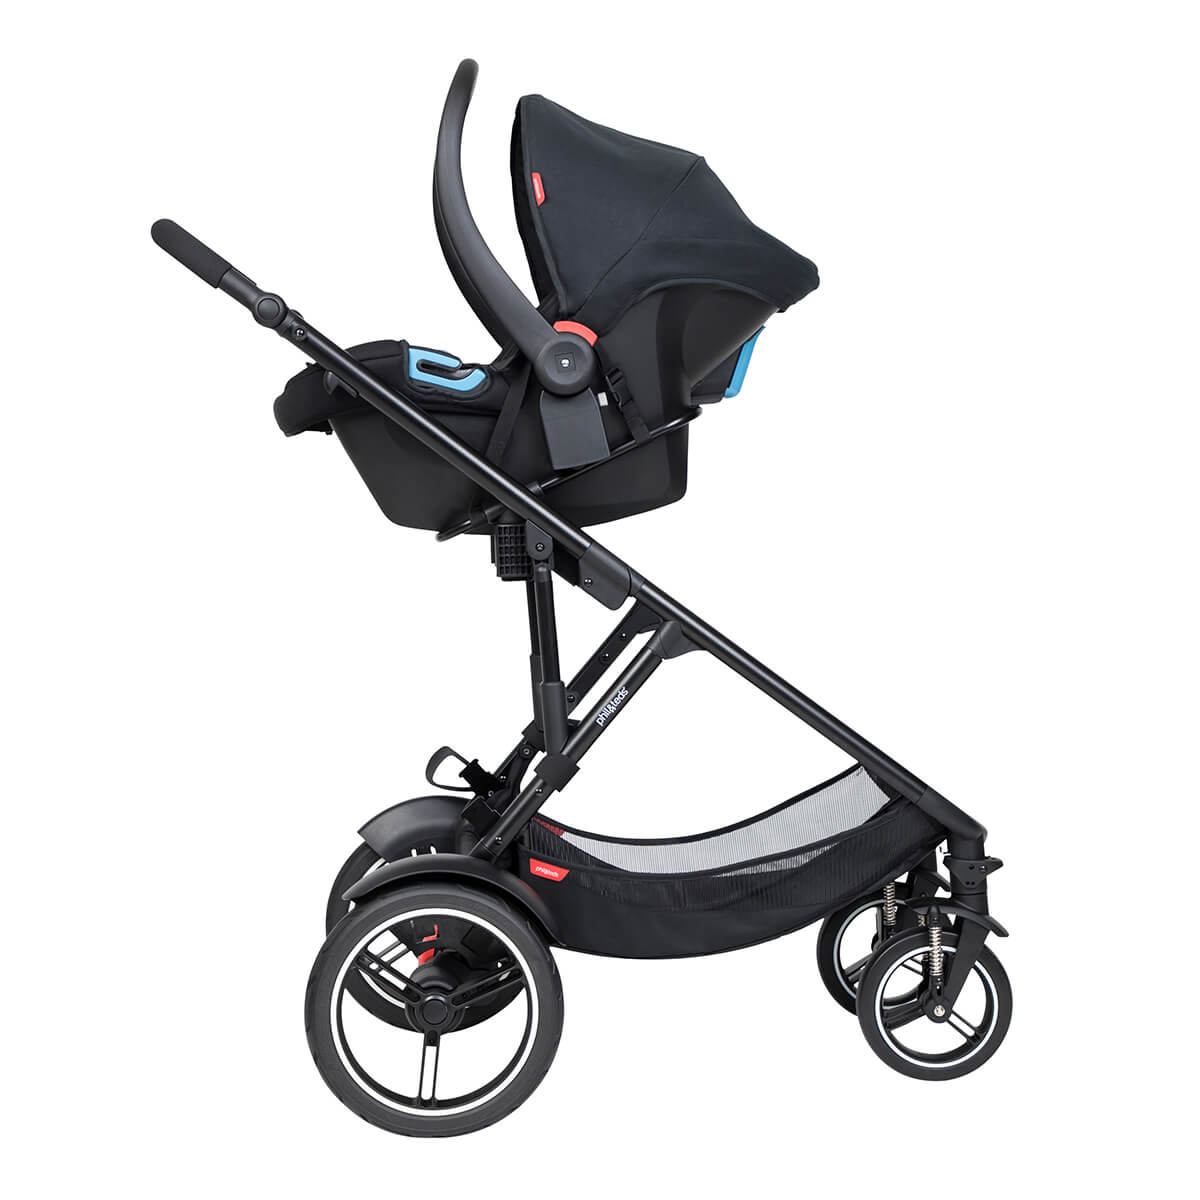 https://cdn.accentuate.io/4509913579597/19466203660482/philteds-voyager-buggy-with-travel-system-in-parent-facing-mode-v1626485628973.jpg?1200x1200